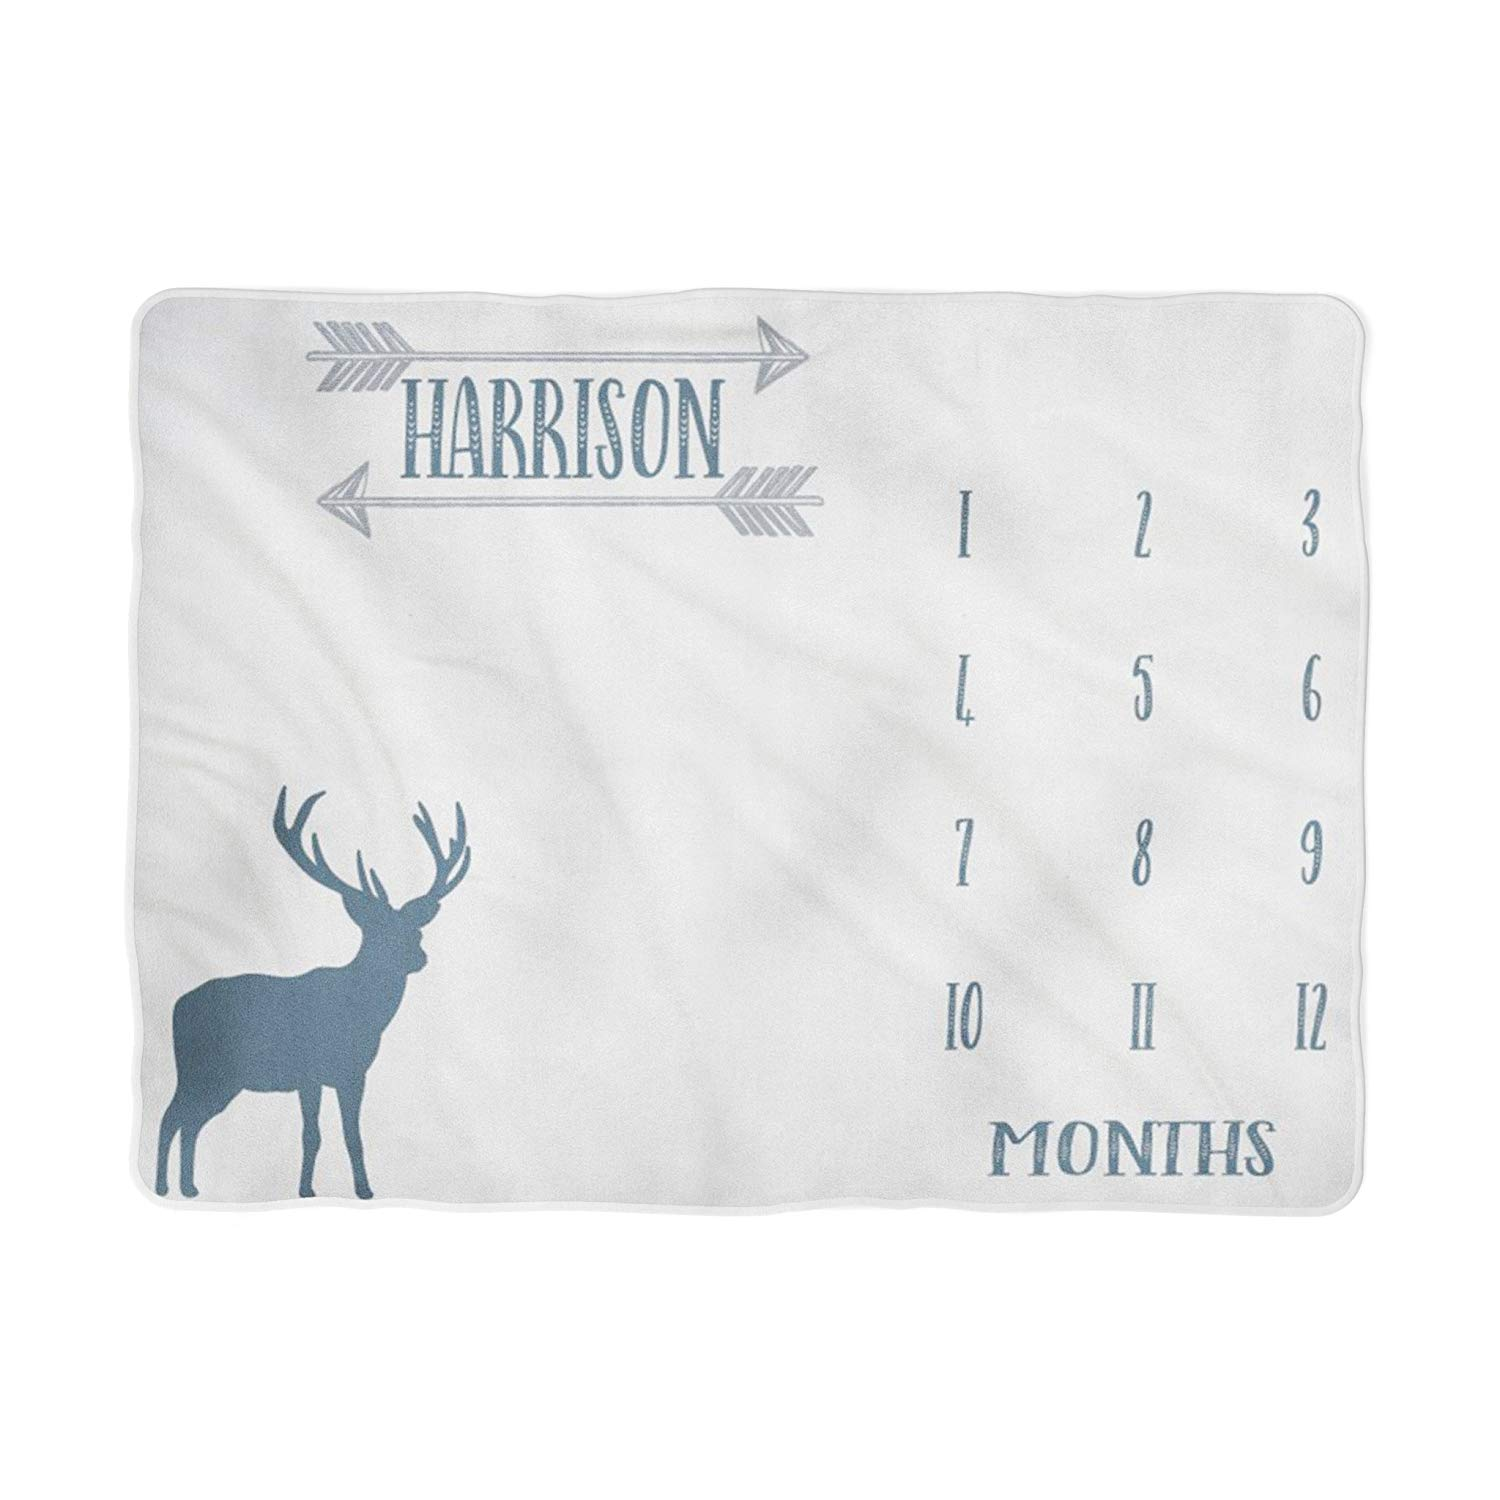 Deer Baby Milestone Blanket, Monthly Growth Tracker, Personalized Baby Blanket, Custom Blanket,, New Baby Gift, Baby Boy